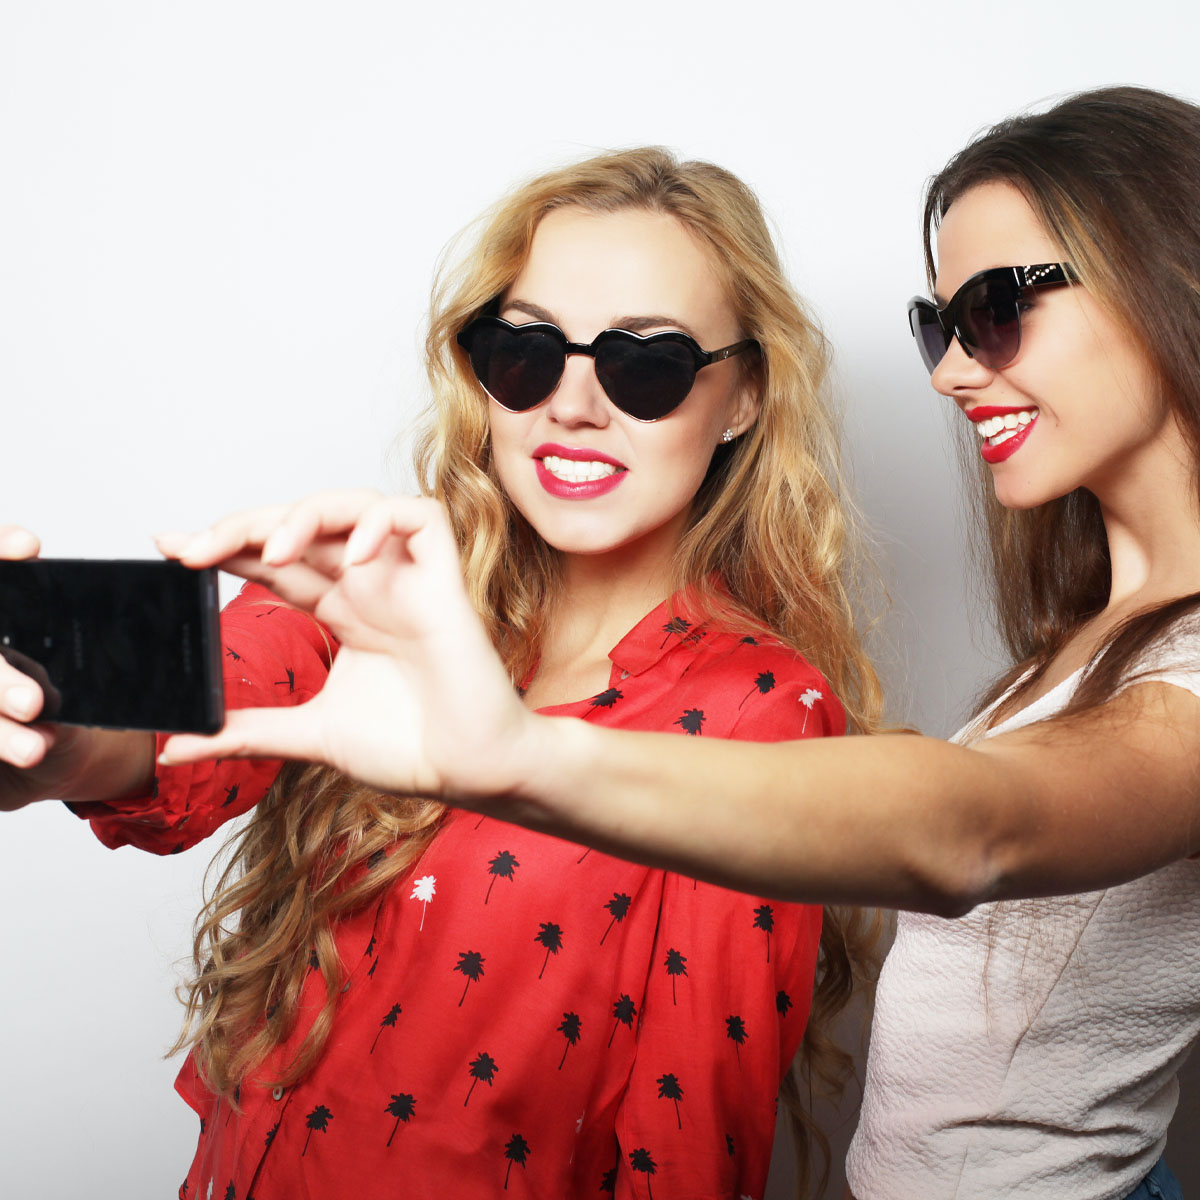 Woodland Hills Mall - Promo - Selfie Club - Now Open image